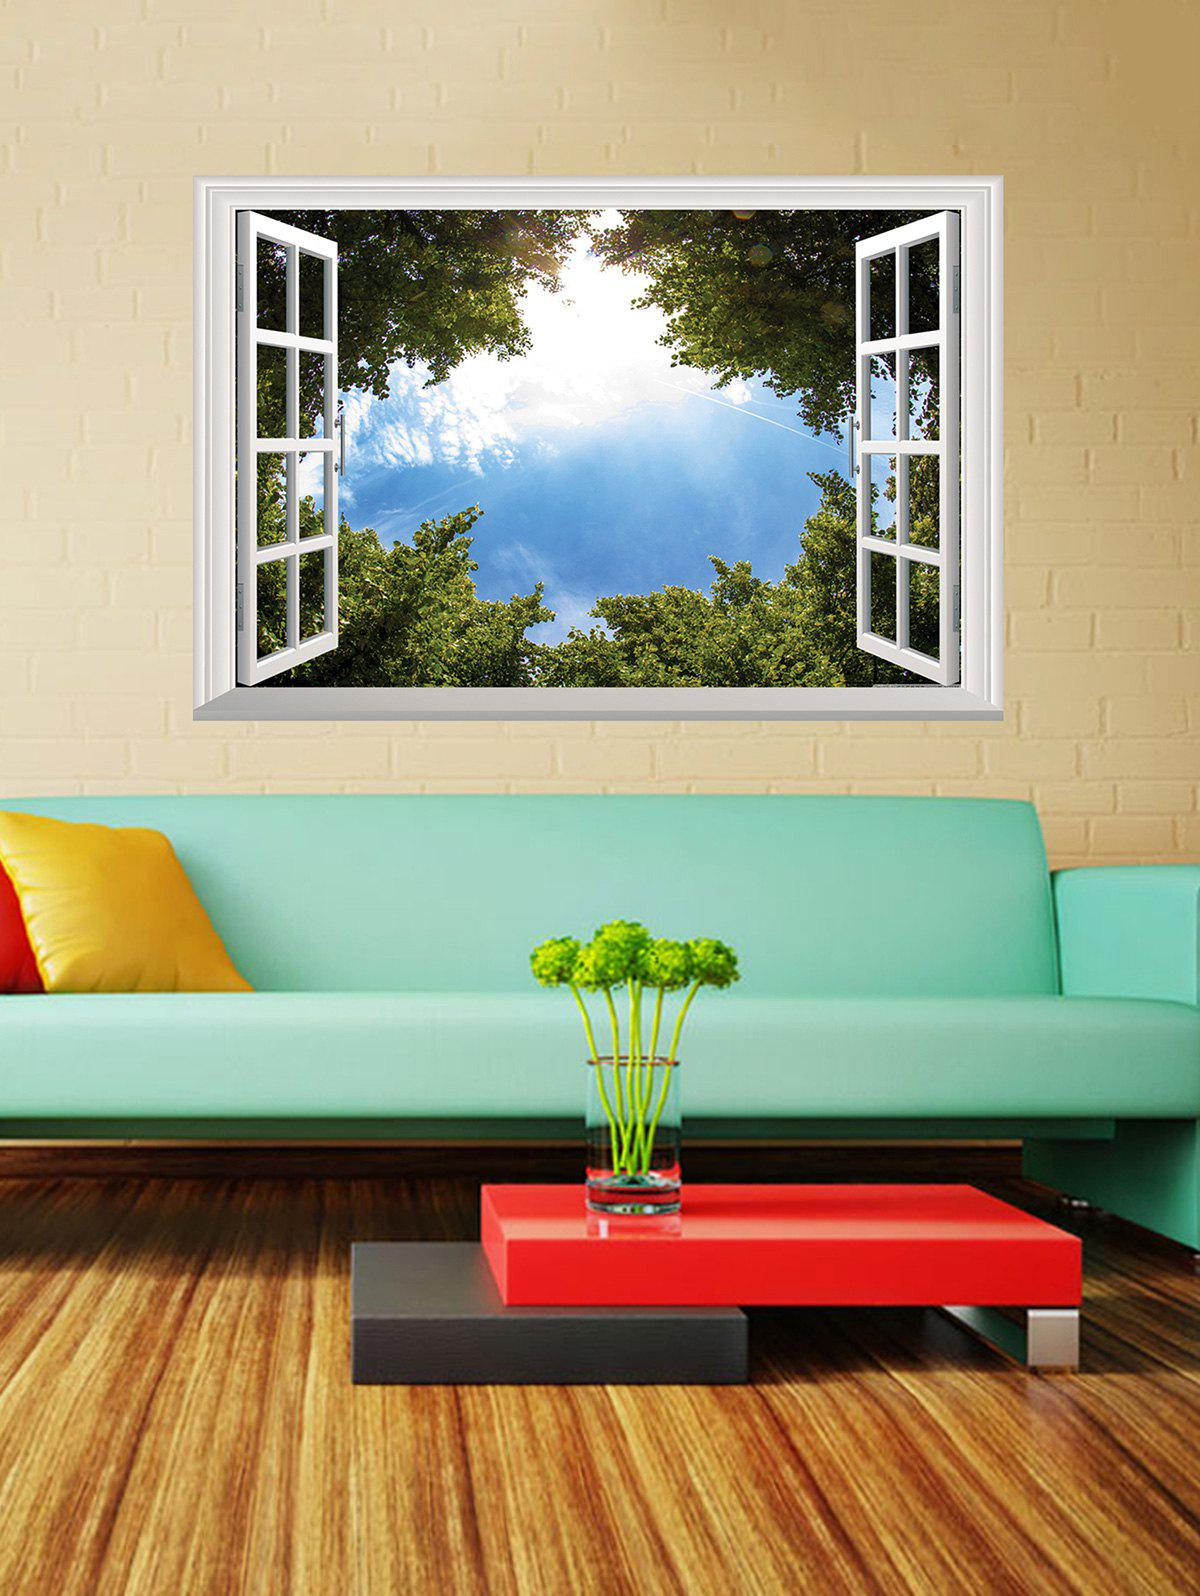 3D Tree Blue Sky Window Wall Sticker - GREEN 50*70CM